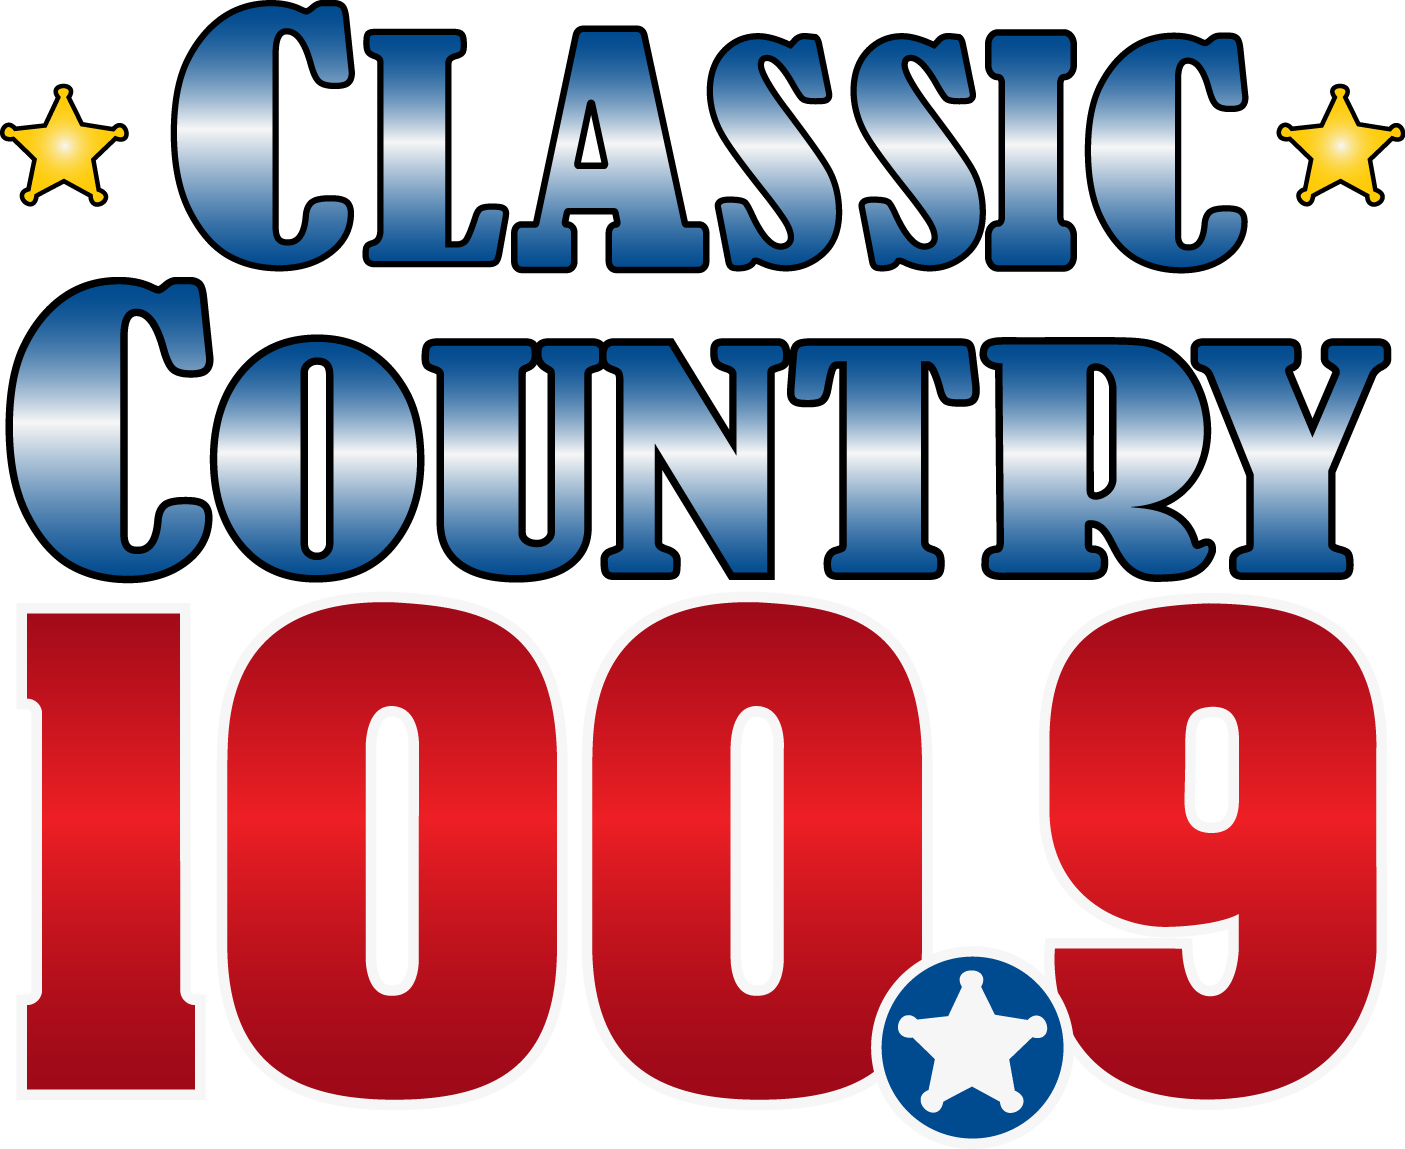 KAYO Country Legends 100.9